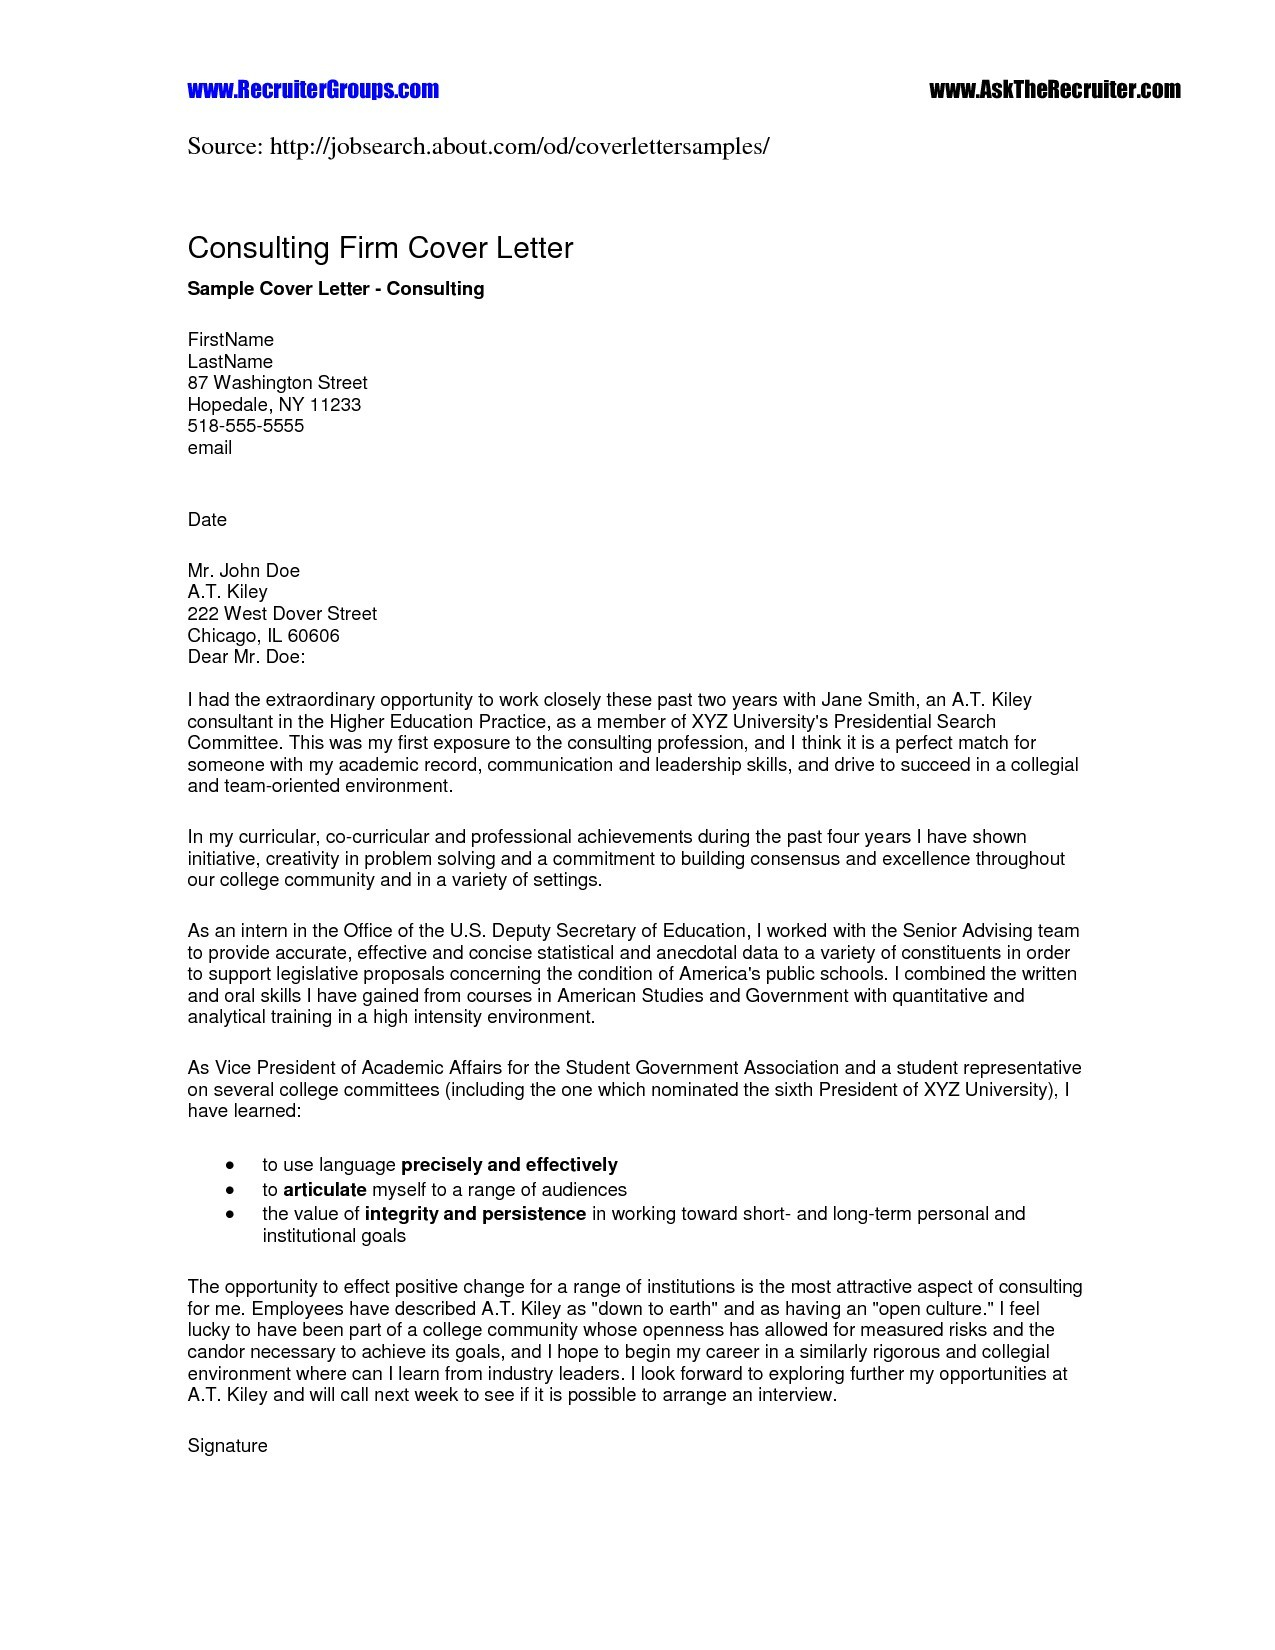 Personal Cover Letter Template - Letter Re Mendation for A Job Position New Fresh Job Fer Letter